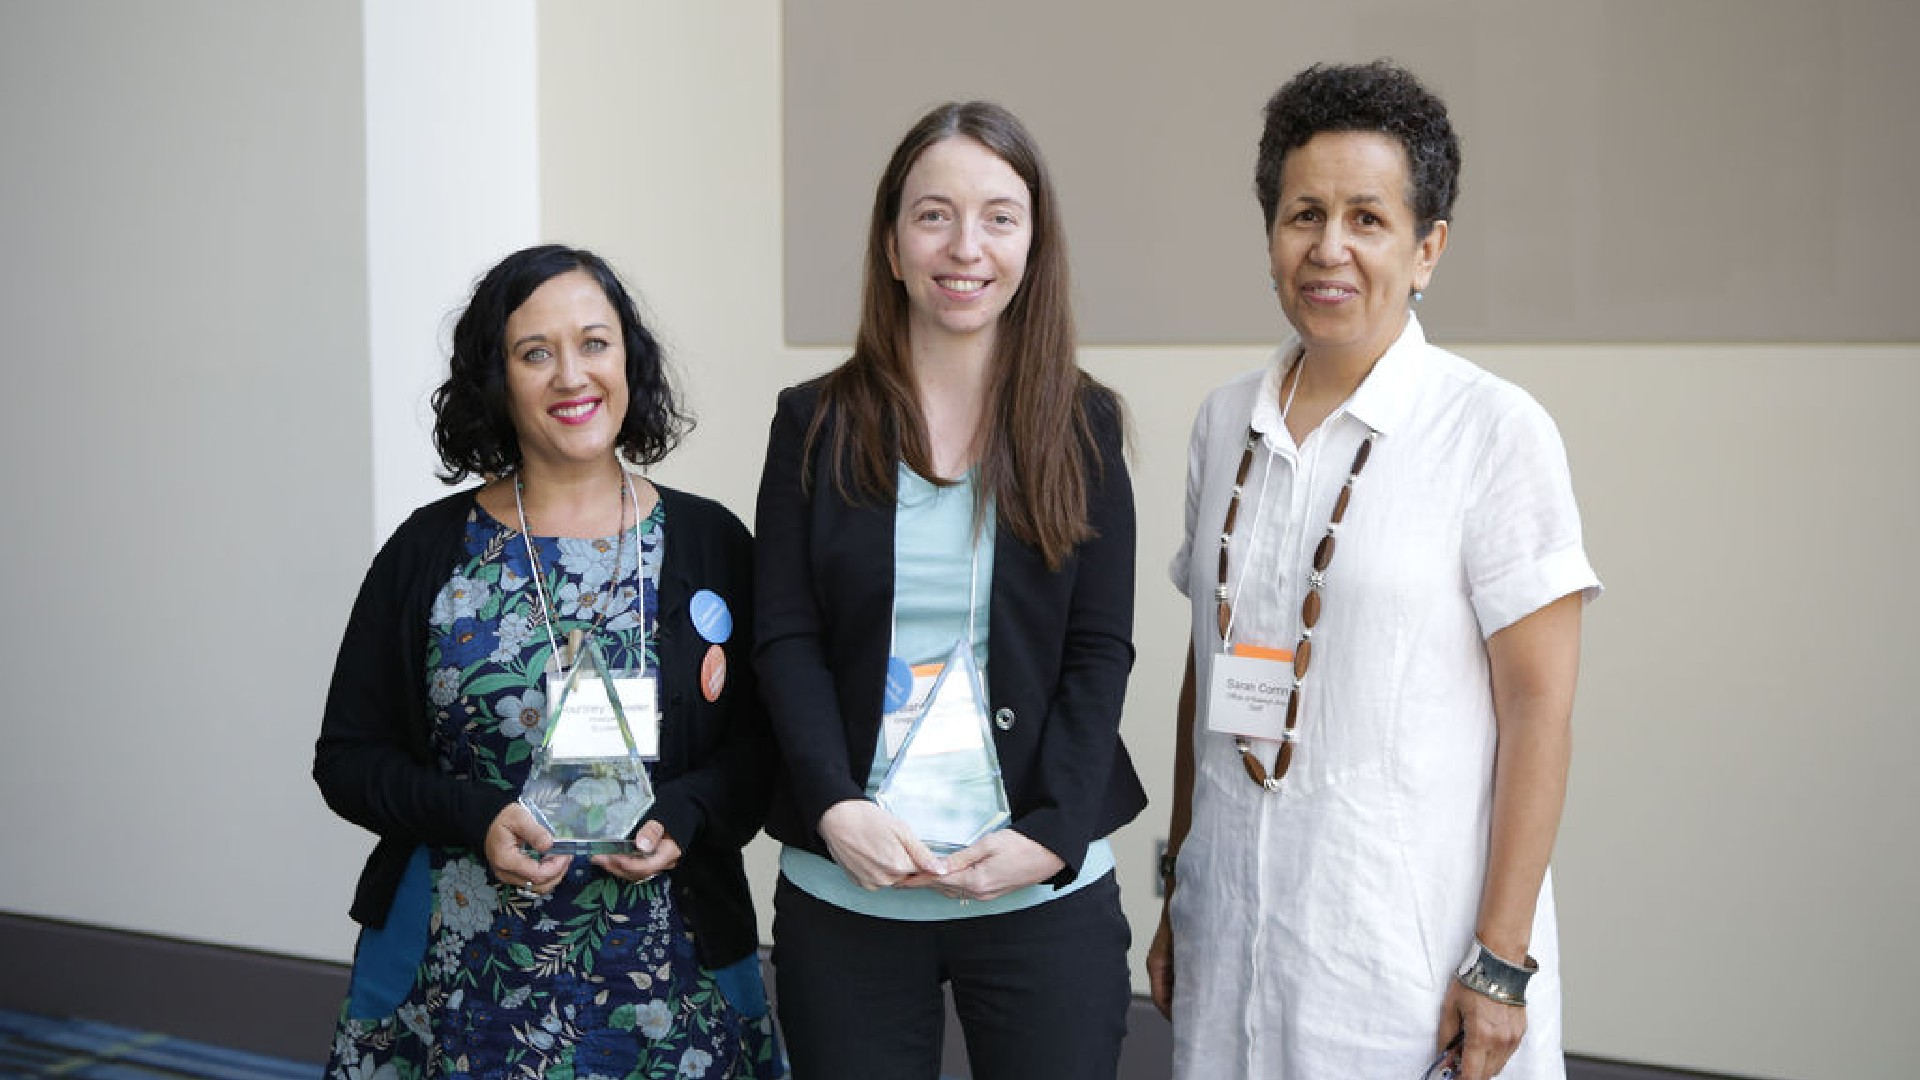 three women smiling, two of them are holding glass awards